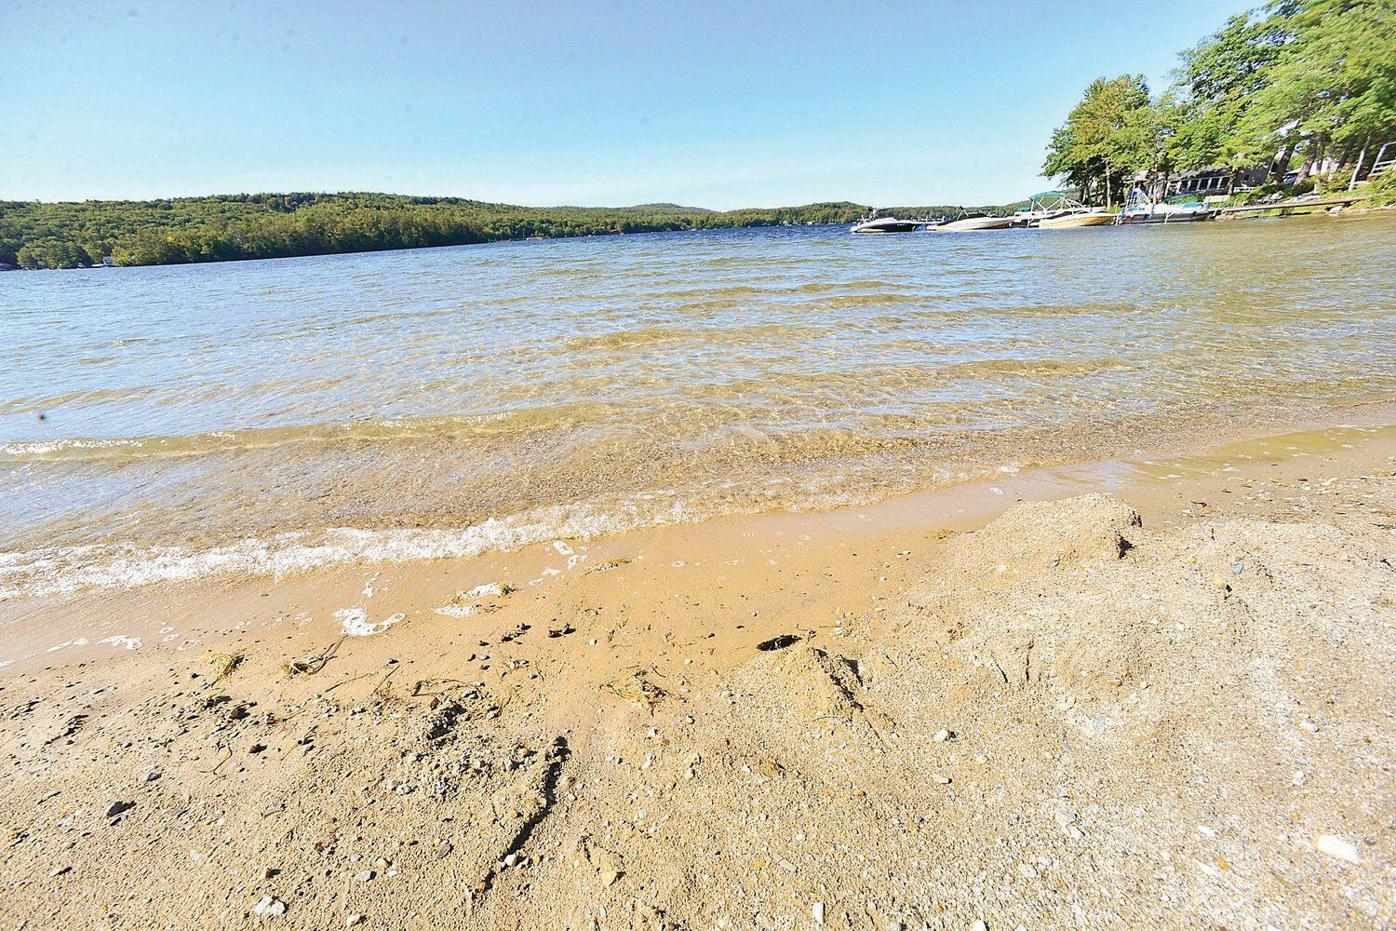 Climate change most likely suspect in Spofford Lake algae growth